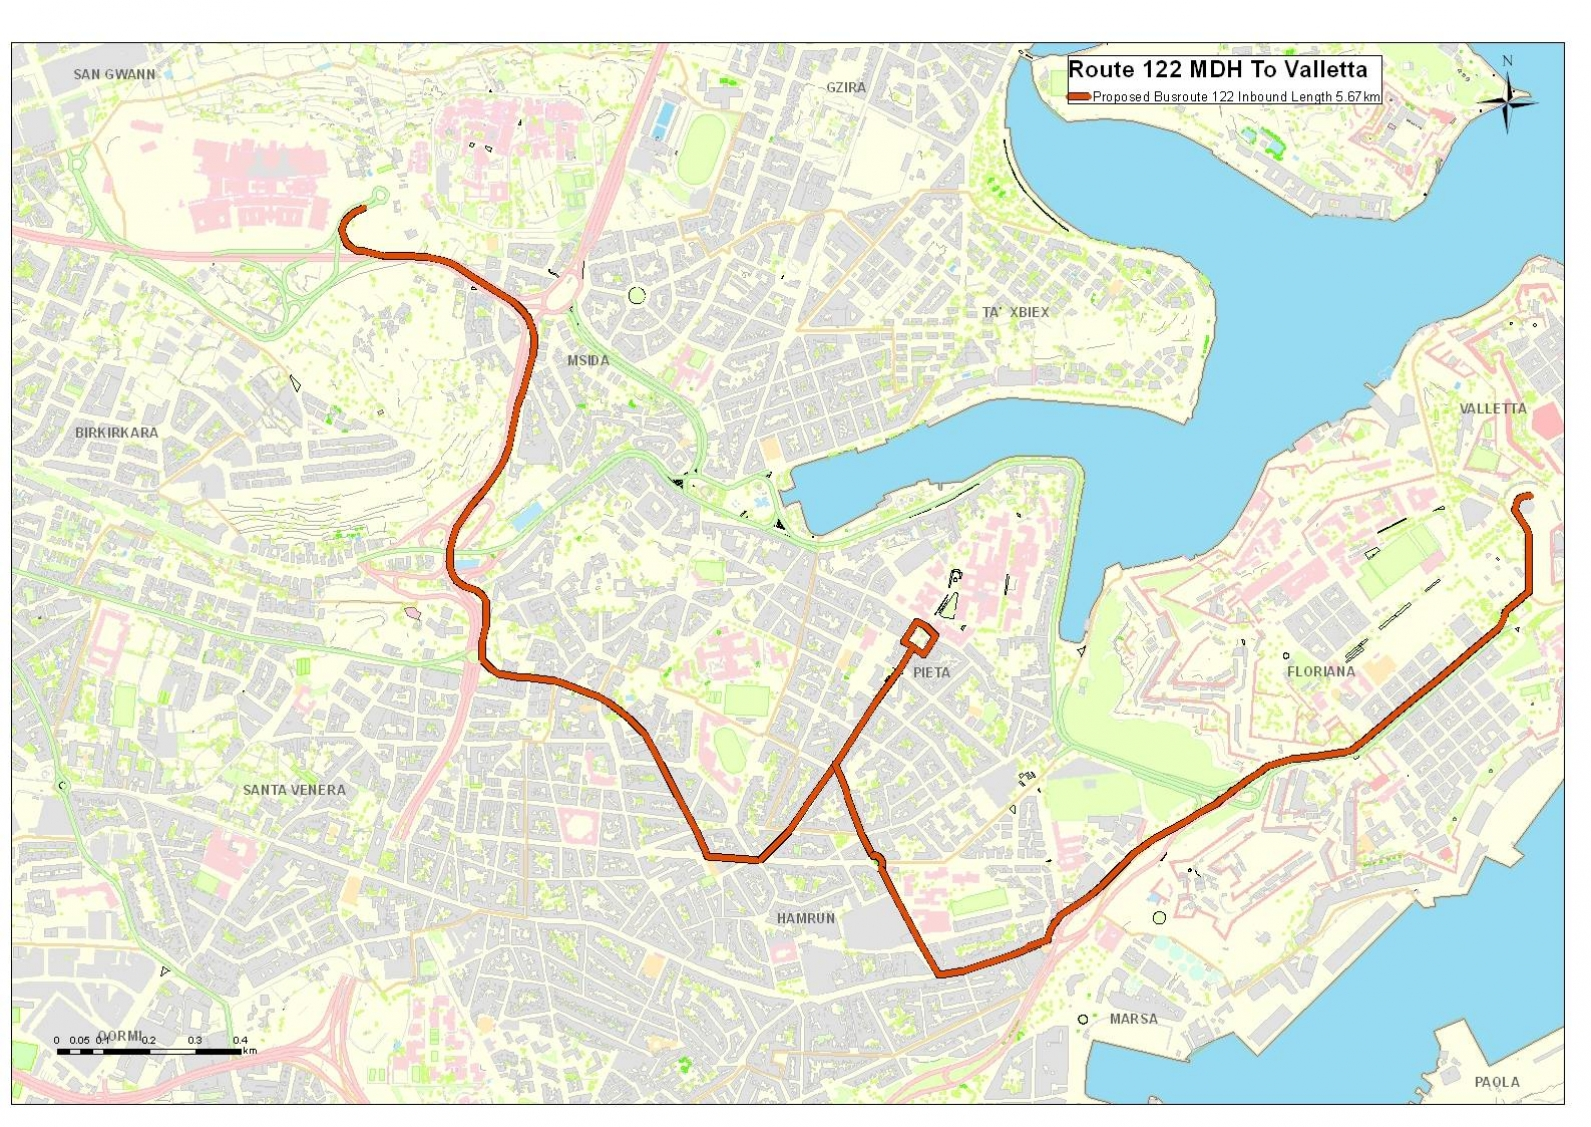 Land-current-network-routes-and-schedules-Valletta-Park-and-Ride-1